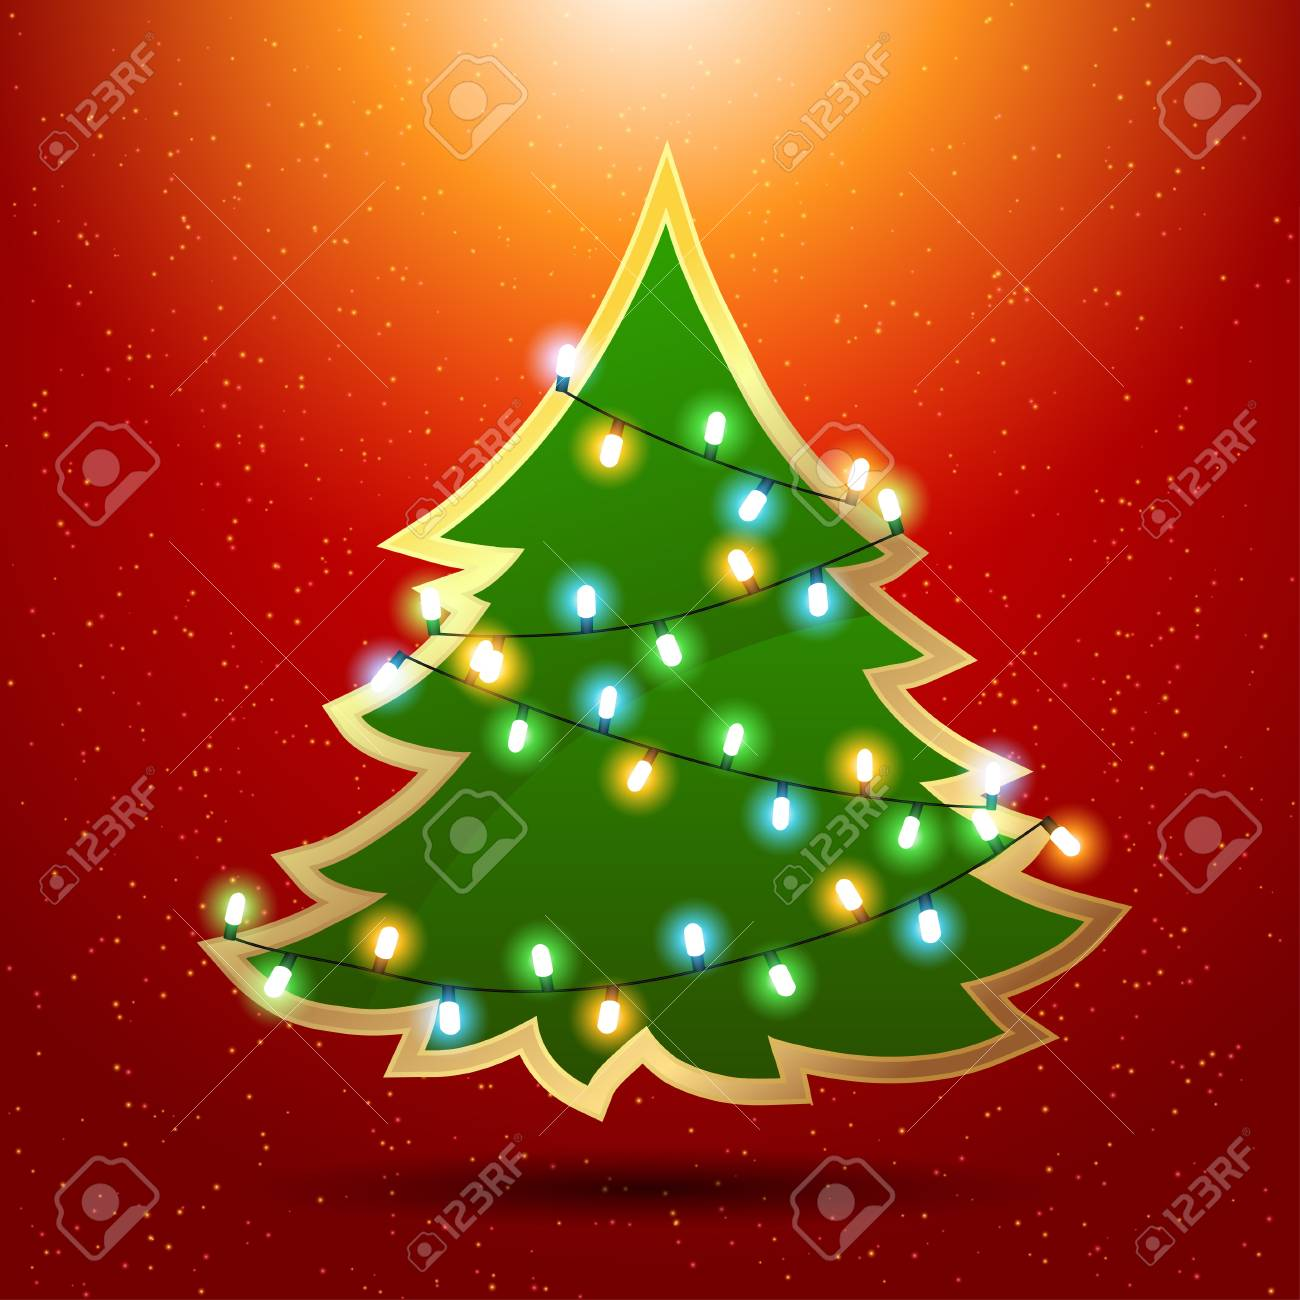 Christmas background with luminous garland and tree Stock Vector - 15997342